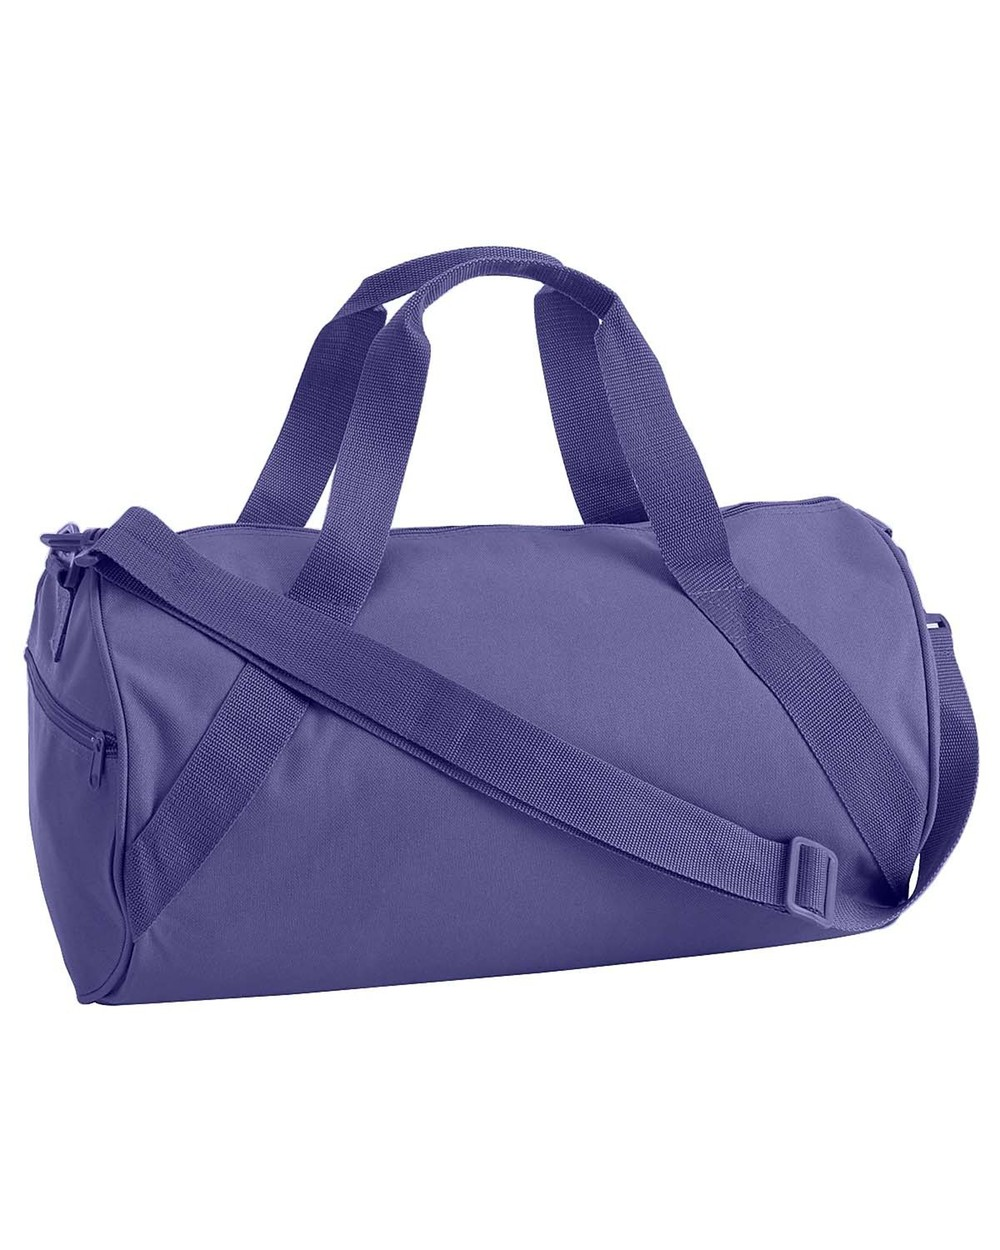 Poly Duffle